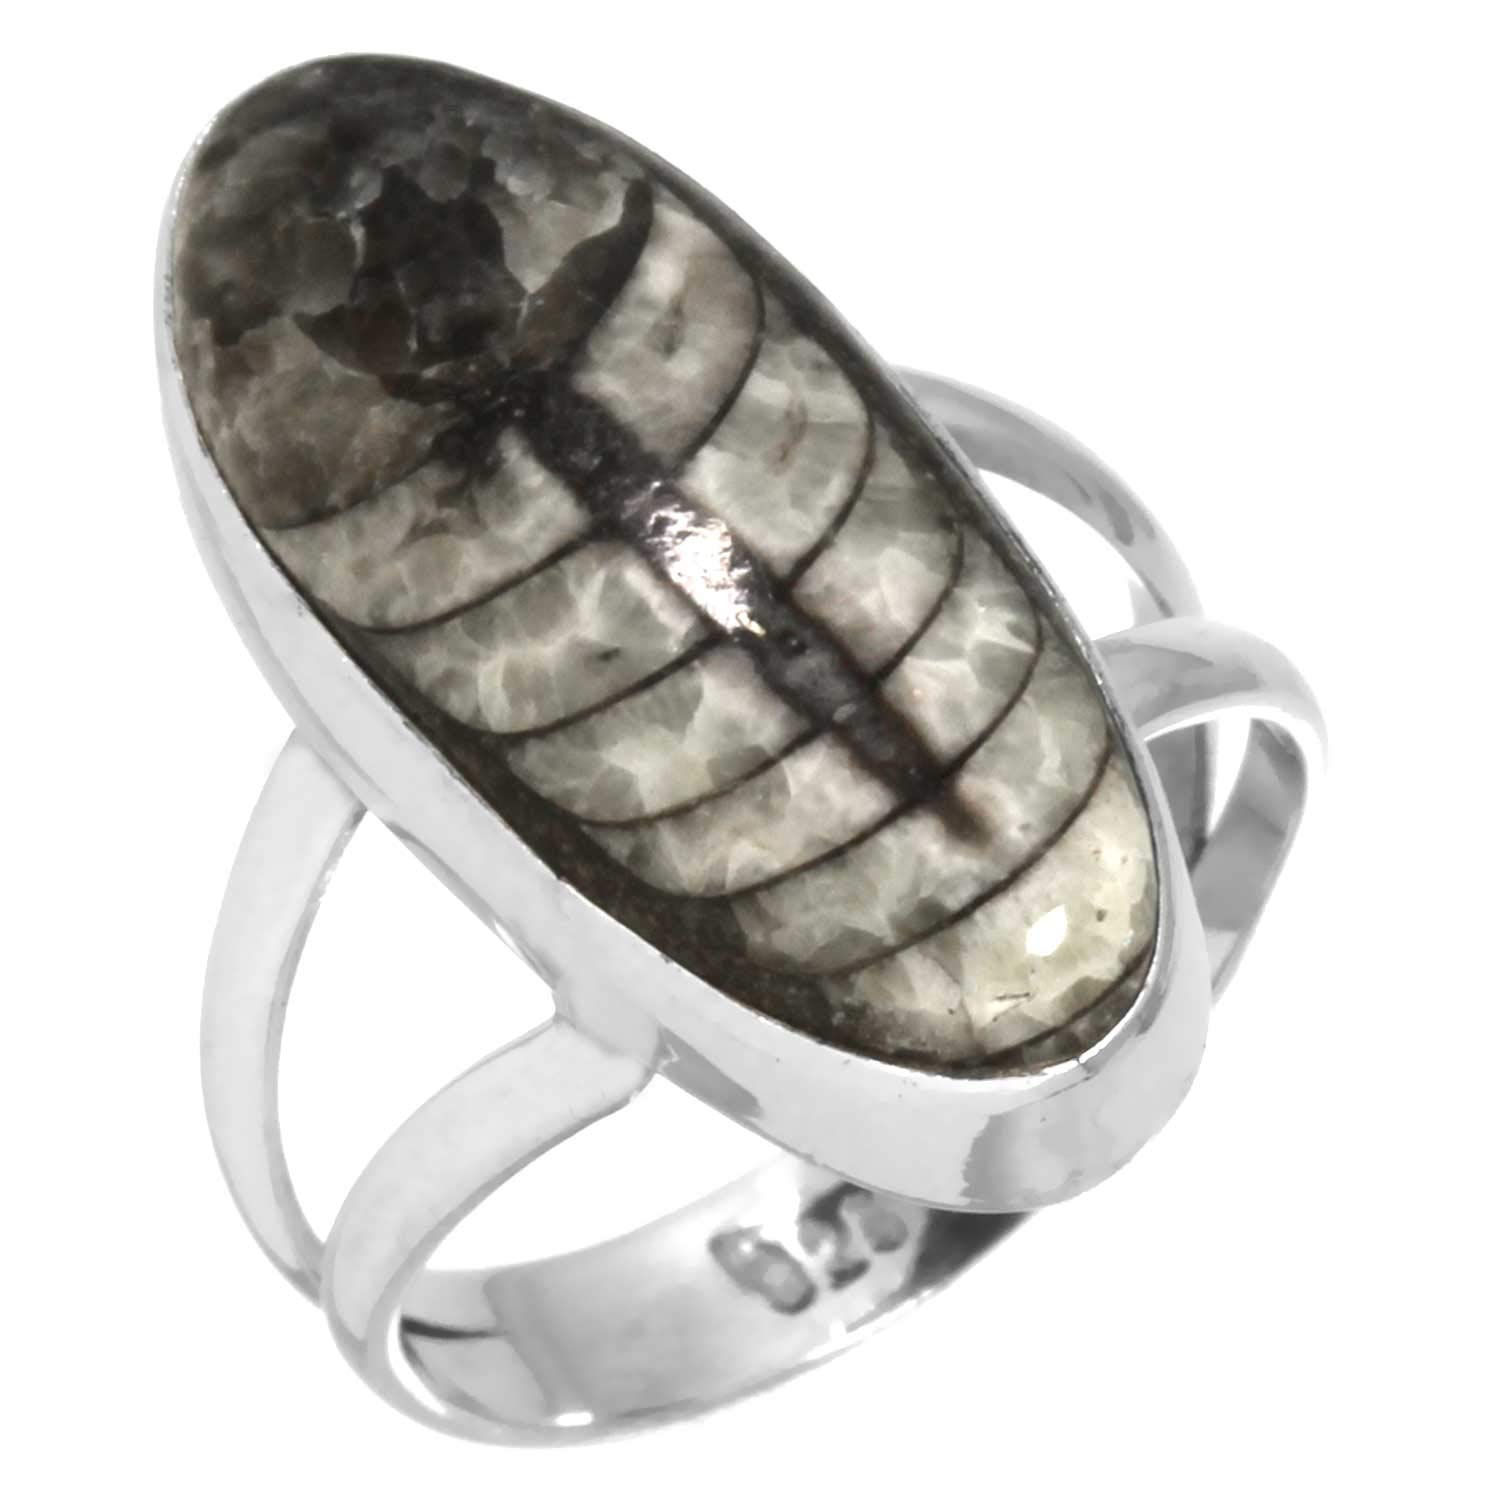 Natural Fossil Orthoceras Gemstone Ring Solid 925 Sterling Silver Collectible Jewelry Size 6